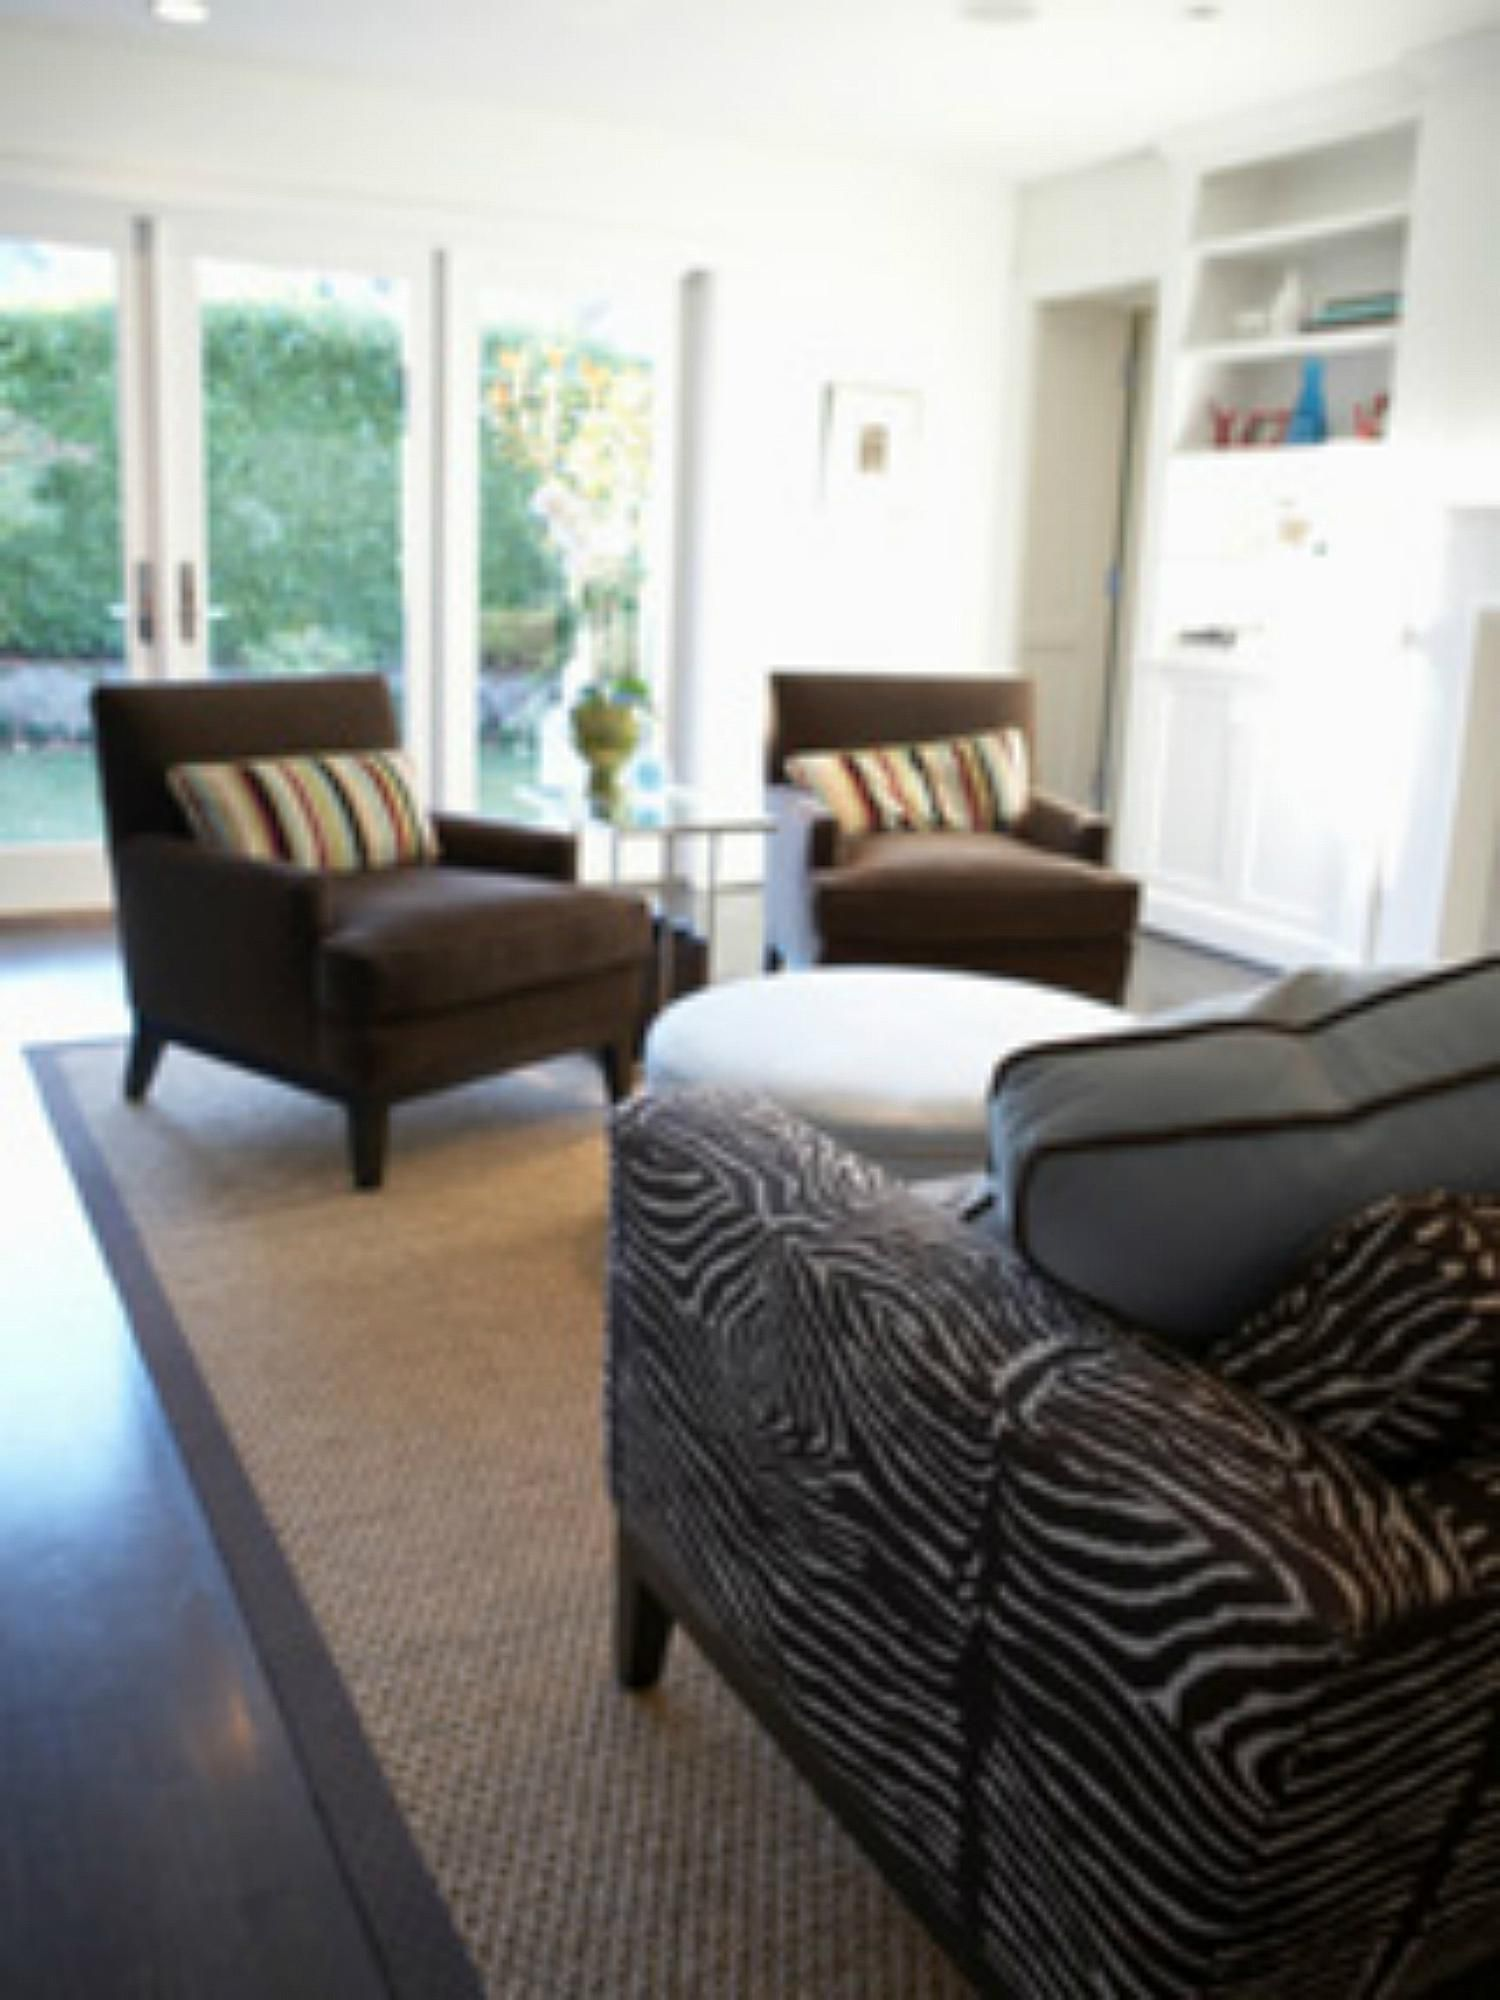 Types of Sofas to Match Your Room Decor